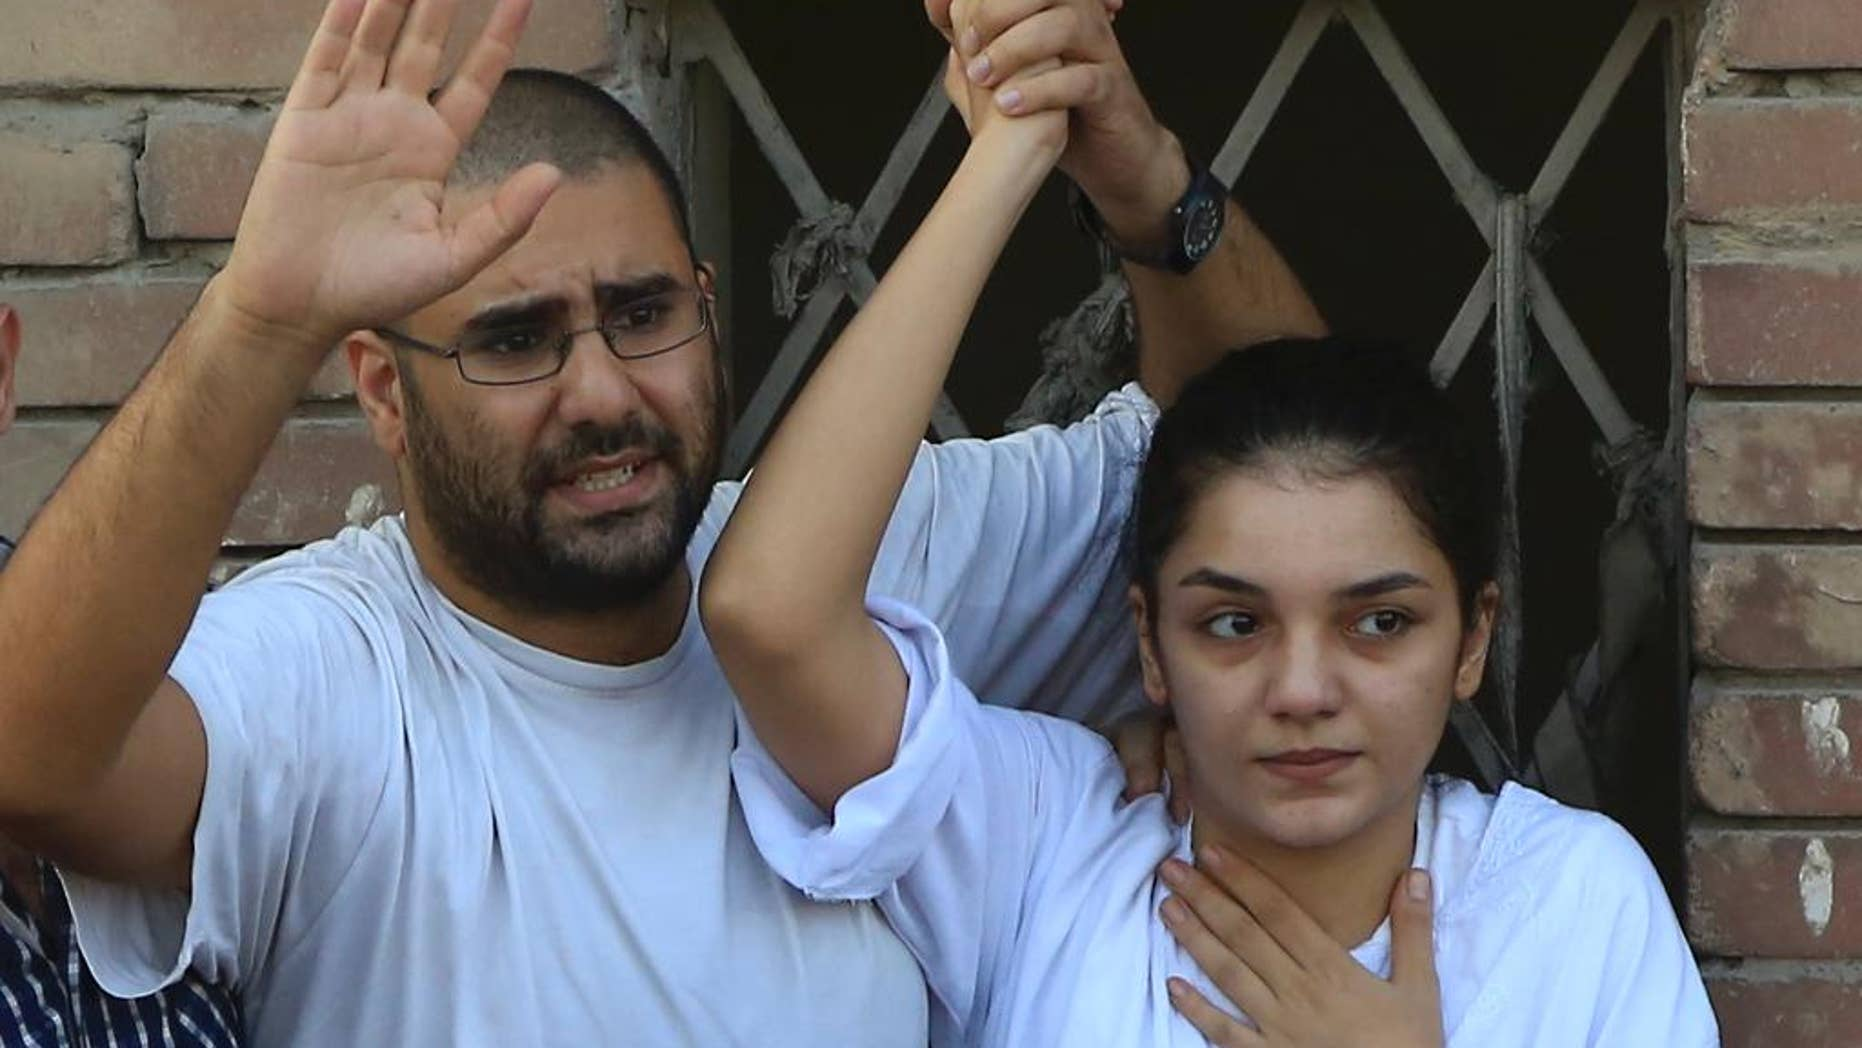 FILE - In this Thursday, Aug. 28, 2014 file photo prominent Egyptian blogger Alaa Abdel-Fattah, left, with his sister Sanaa Abdel-Fattah , speaks to the crowd after attending their father's funeral in Cairo, Egypt. Officials said the prominent activist voluntarily gave herself up to police on Saturday to start a six-month sentence passed against her last week for insulting the judiciary. (AP Photo/Hassan Ammar, File)